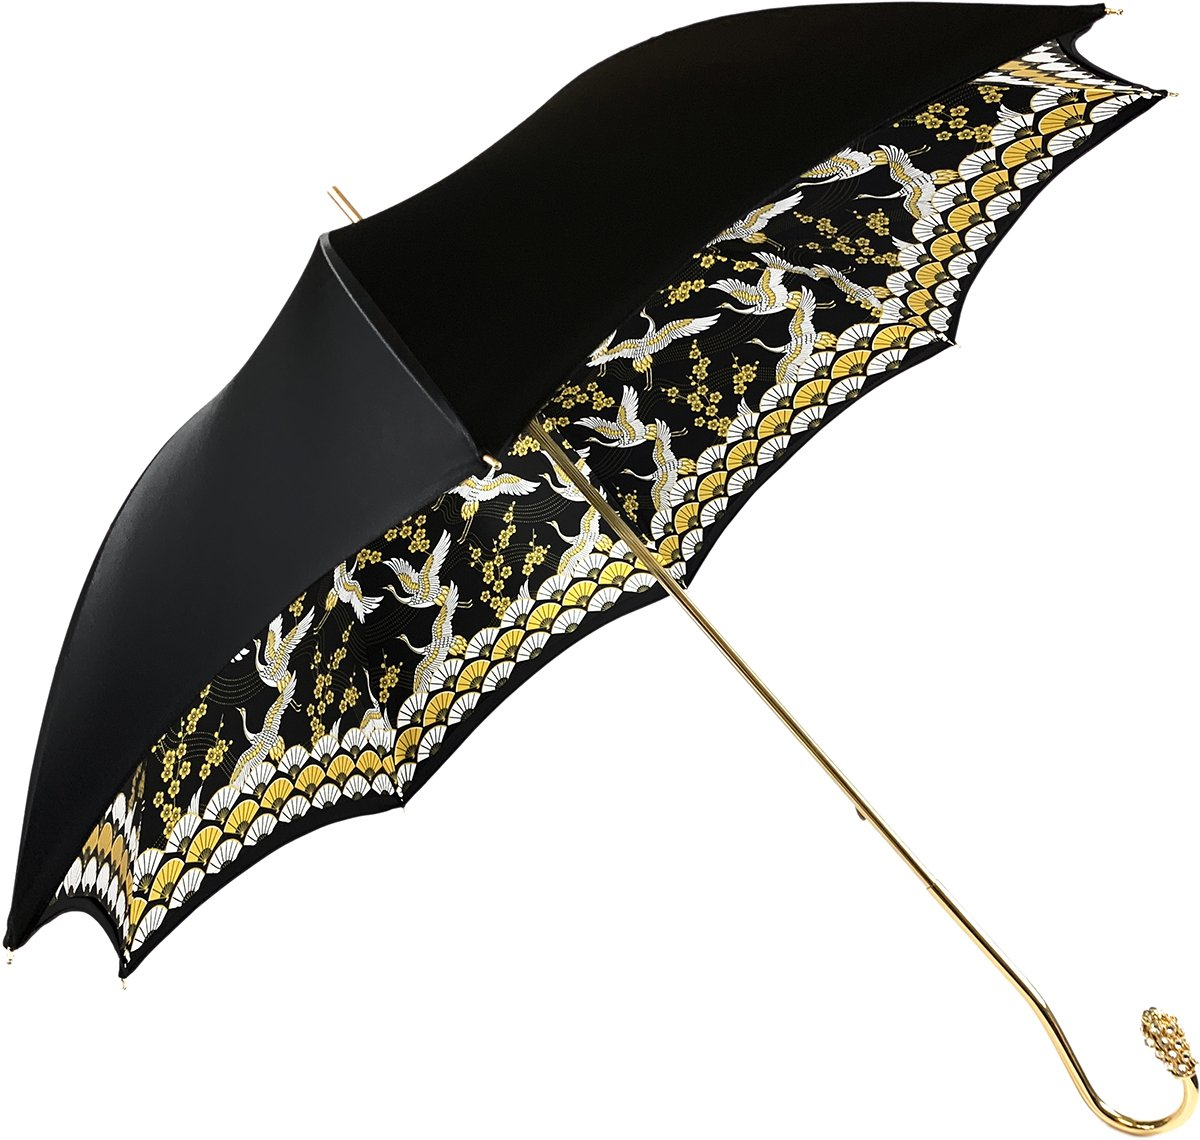 Elegant Internally Herons Print Umbrella, Double Cloth - IL MARCHESATO LUXURY UMBRELLAS, CANES AND SHOEHORNS